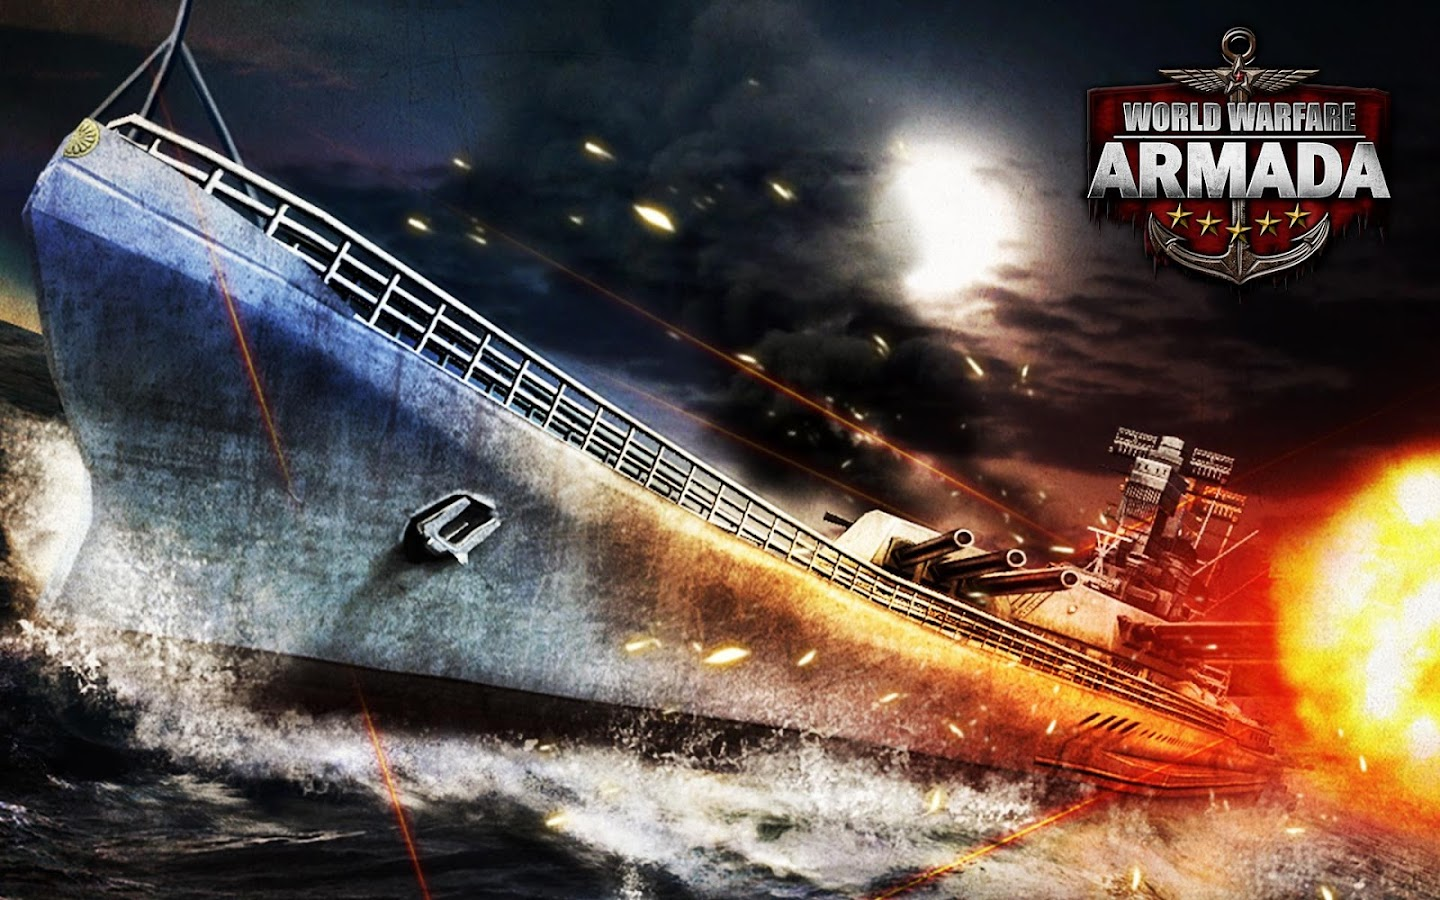 World Warfare: Armada Screenshot 14